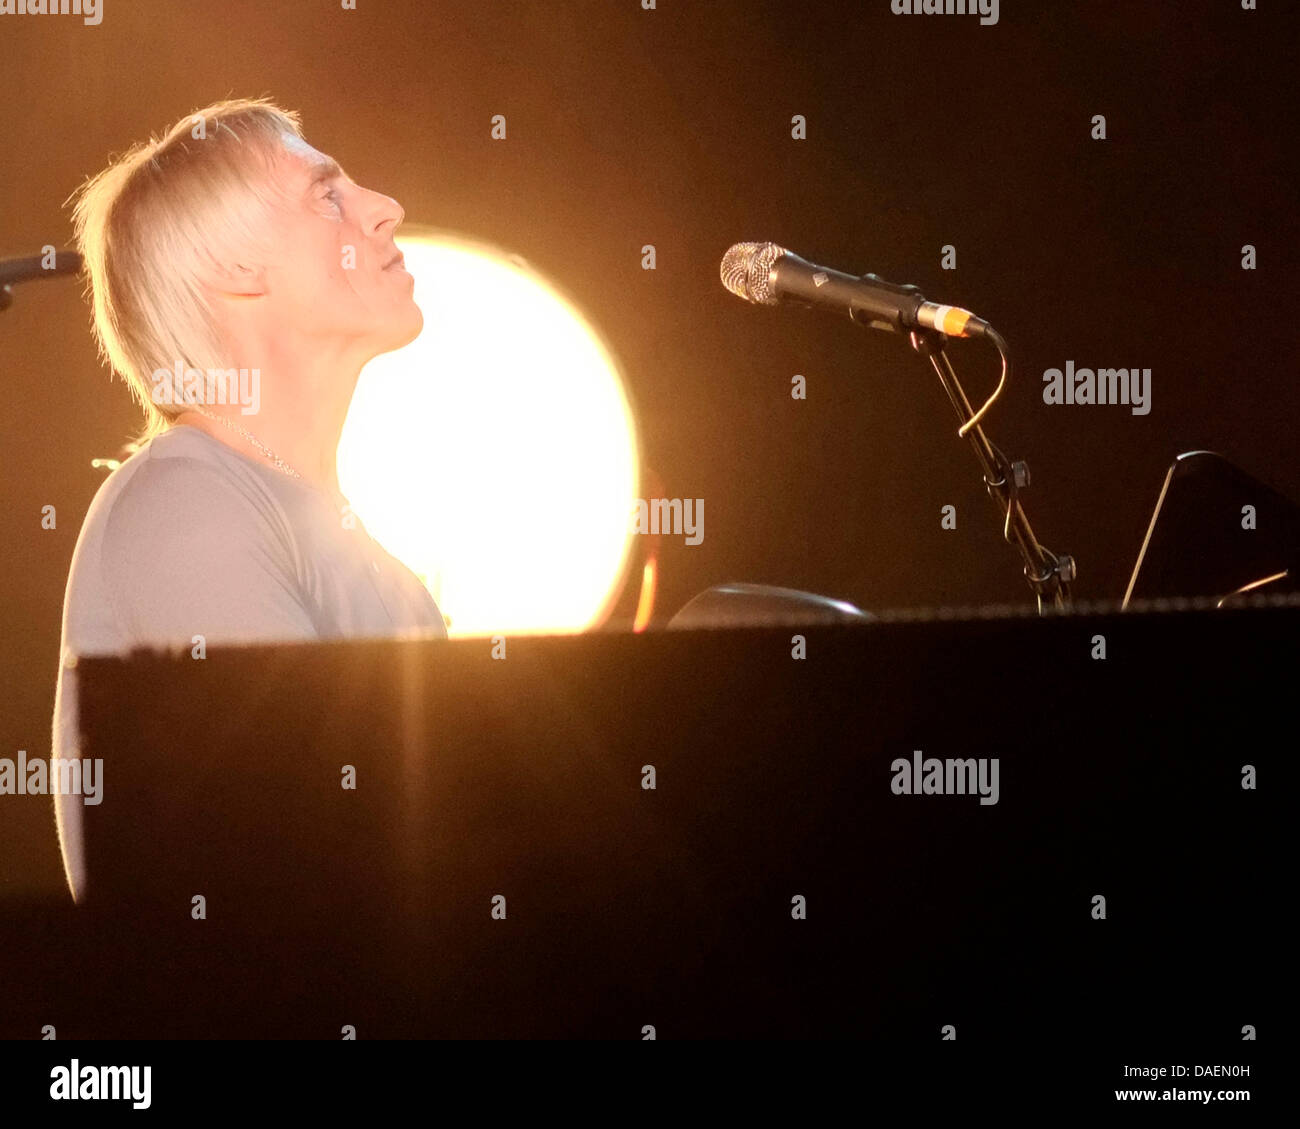 Kew The Music Stock Photos & Kew The Music Stock Images - Alamy